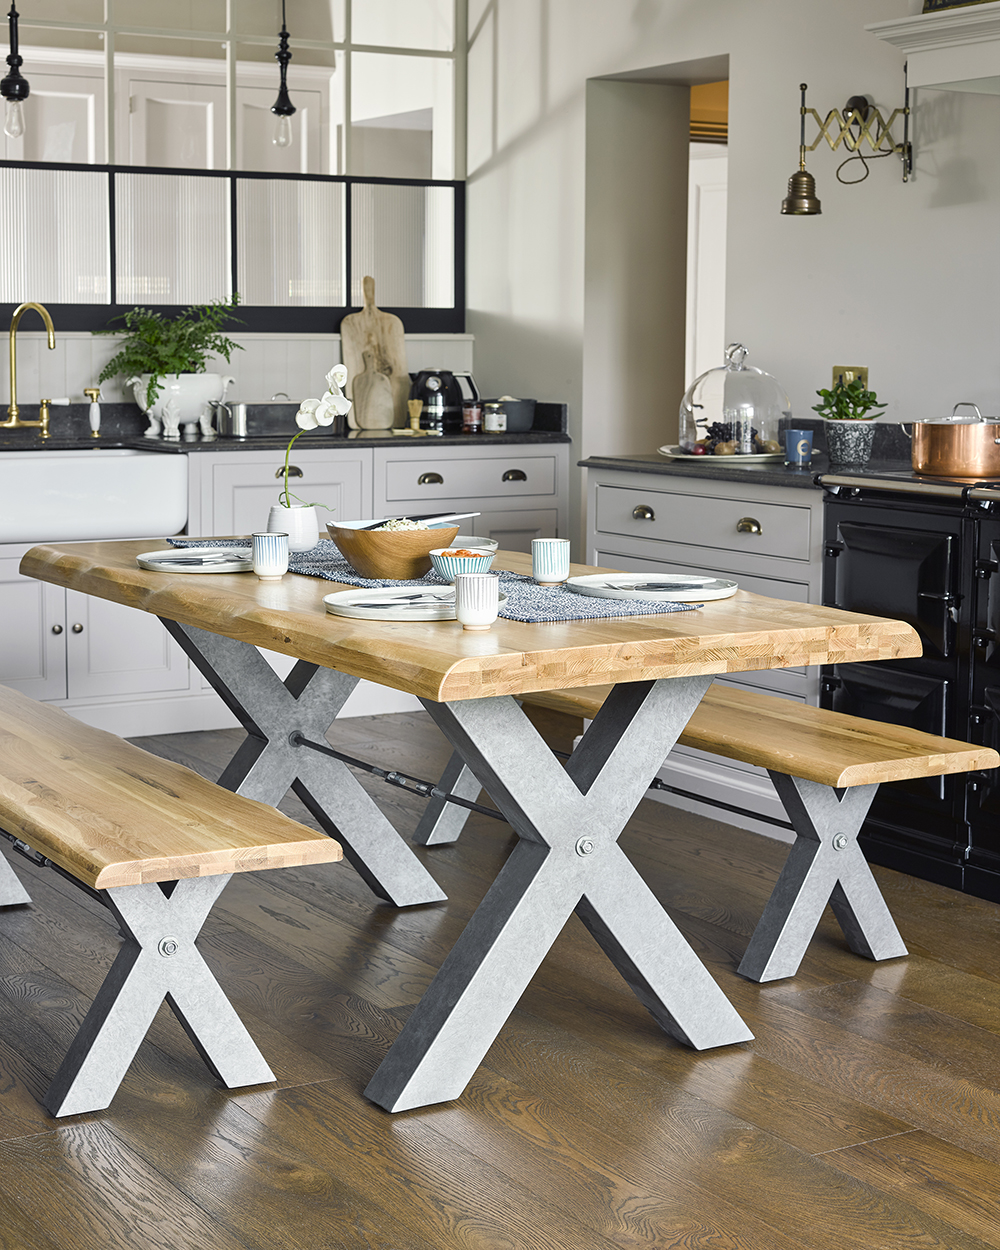 Living edge bench dining table set in kitchen from Oak Furniture Land - How to Choose Wood Furniture